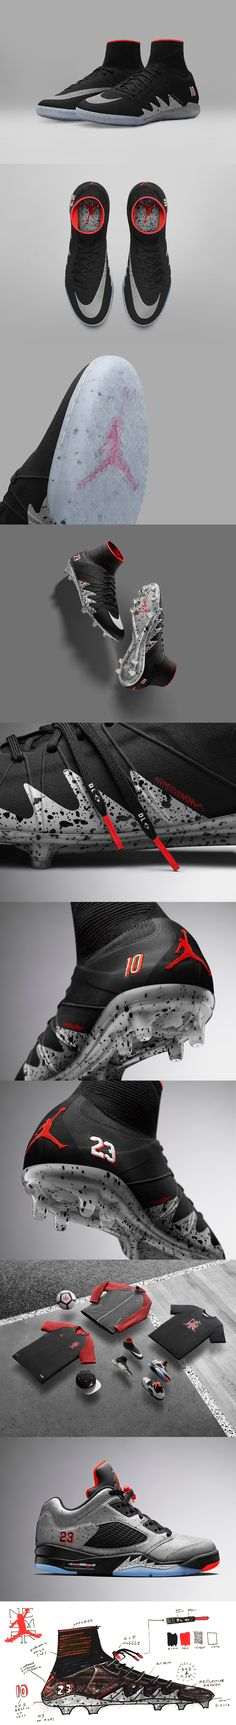 NEYMAR JR. X JORDAN COLLECTION Jordan Cleats 35963b9f5